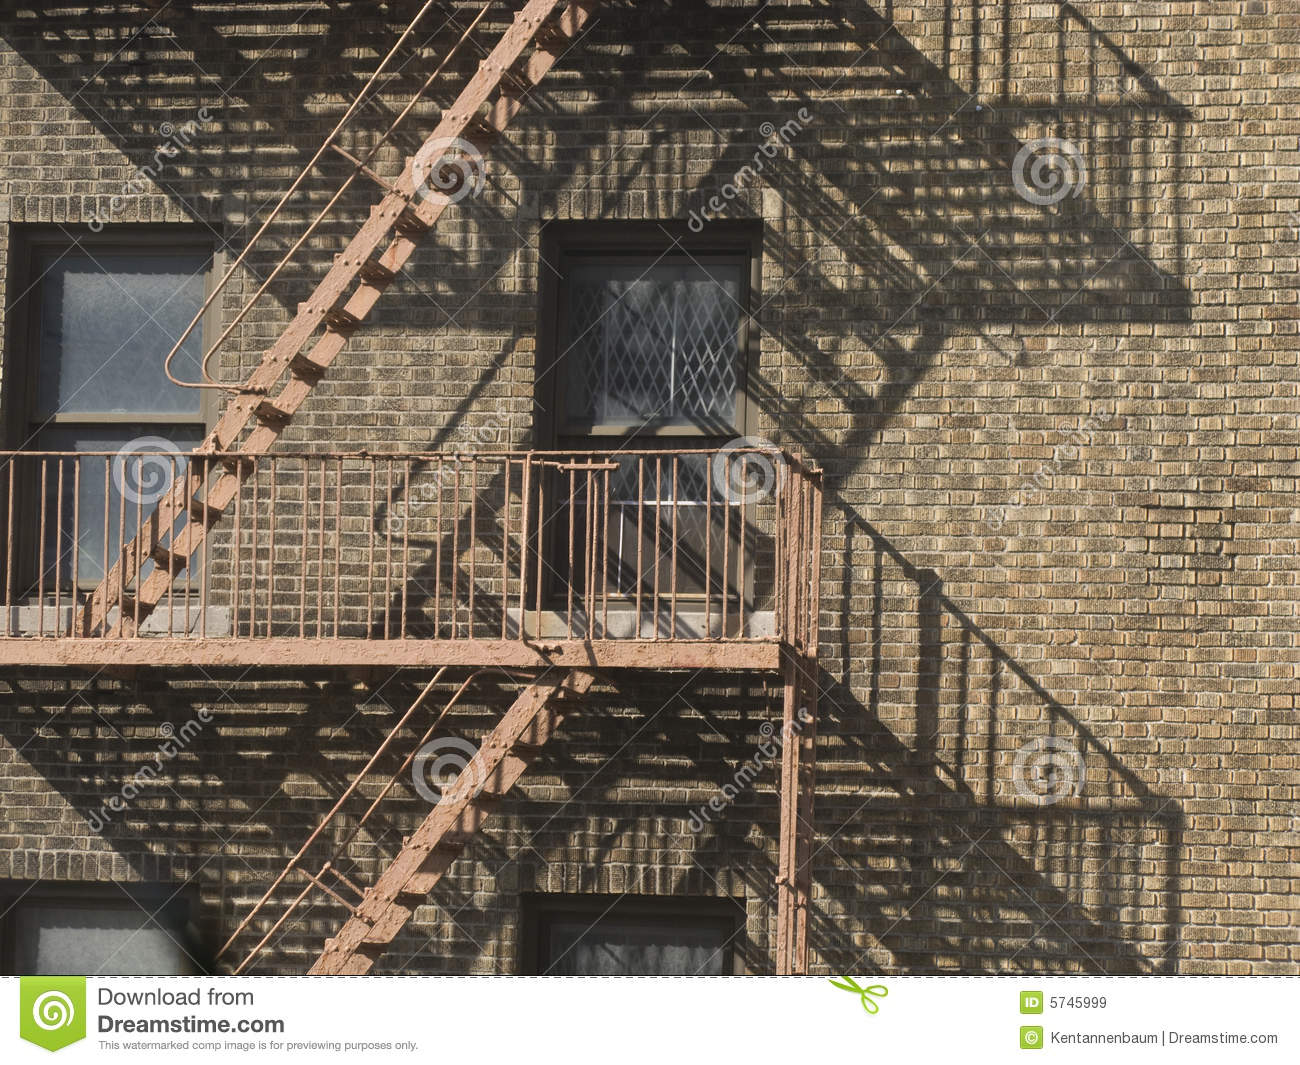 USA New York City Apartment Building Apartment Building Stock Image Of York